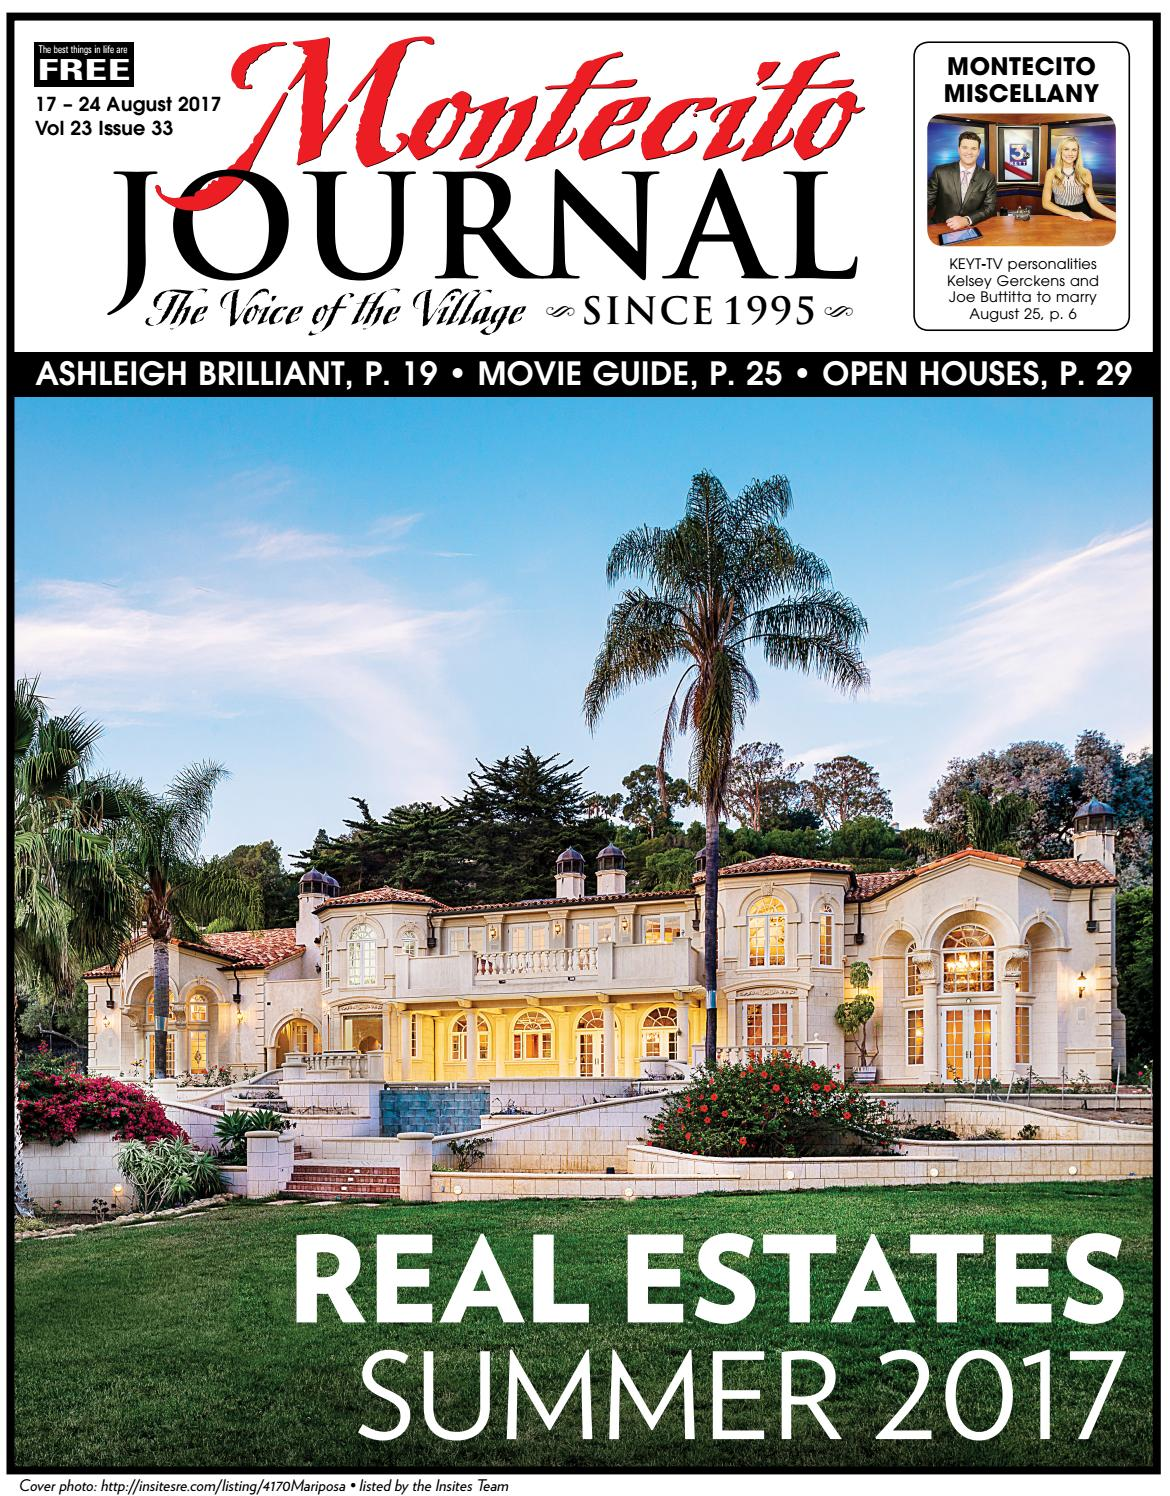 Real Estate Summer 2017 by Montecito Journal - issuu